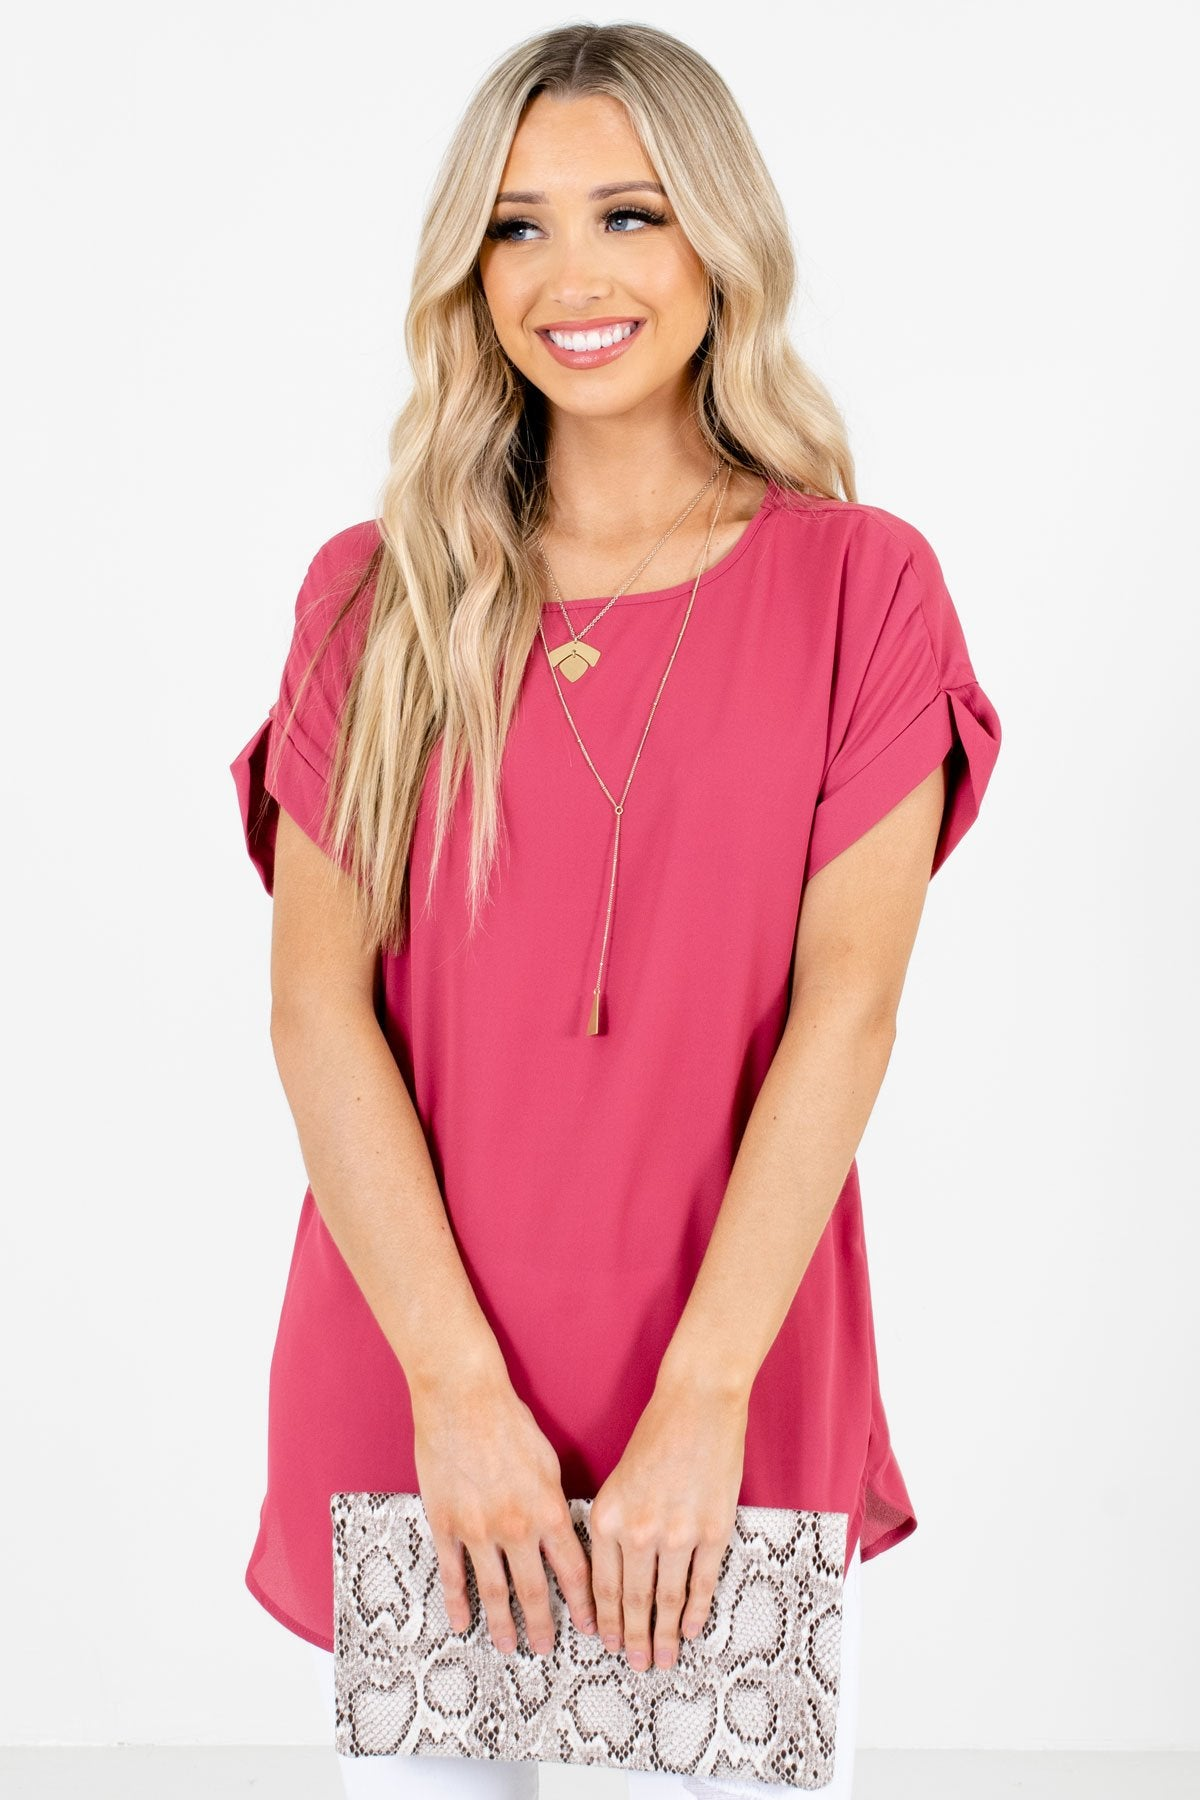 Rose Pink Lightweight and Flowy Boutique Blouses for Women